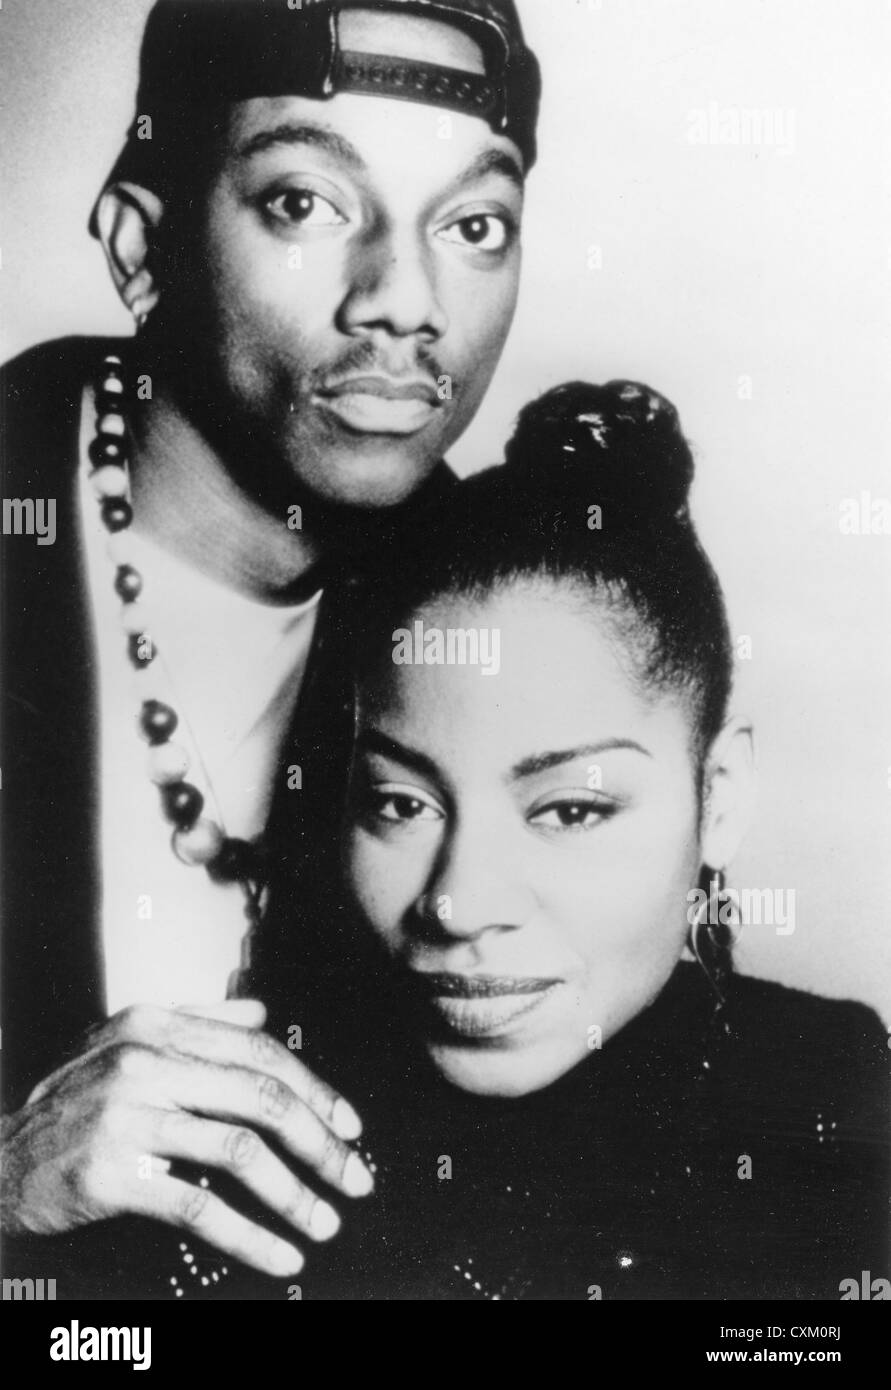 CULTURE BEAT Promotional photo of Euro-pop duo Tania Evans and Jay Supreme - Stock Image